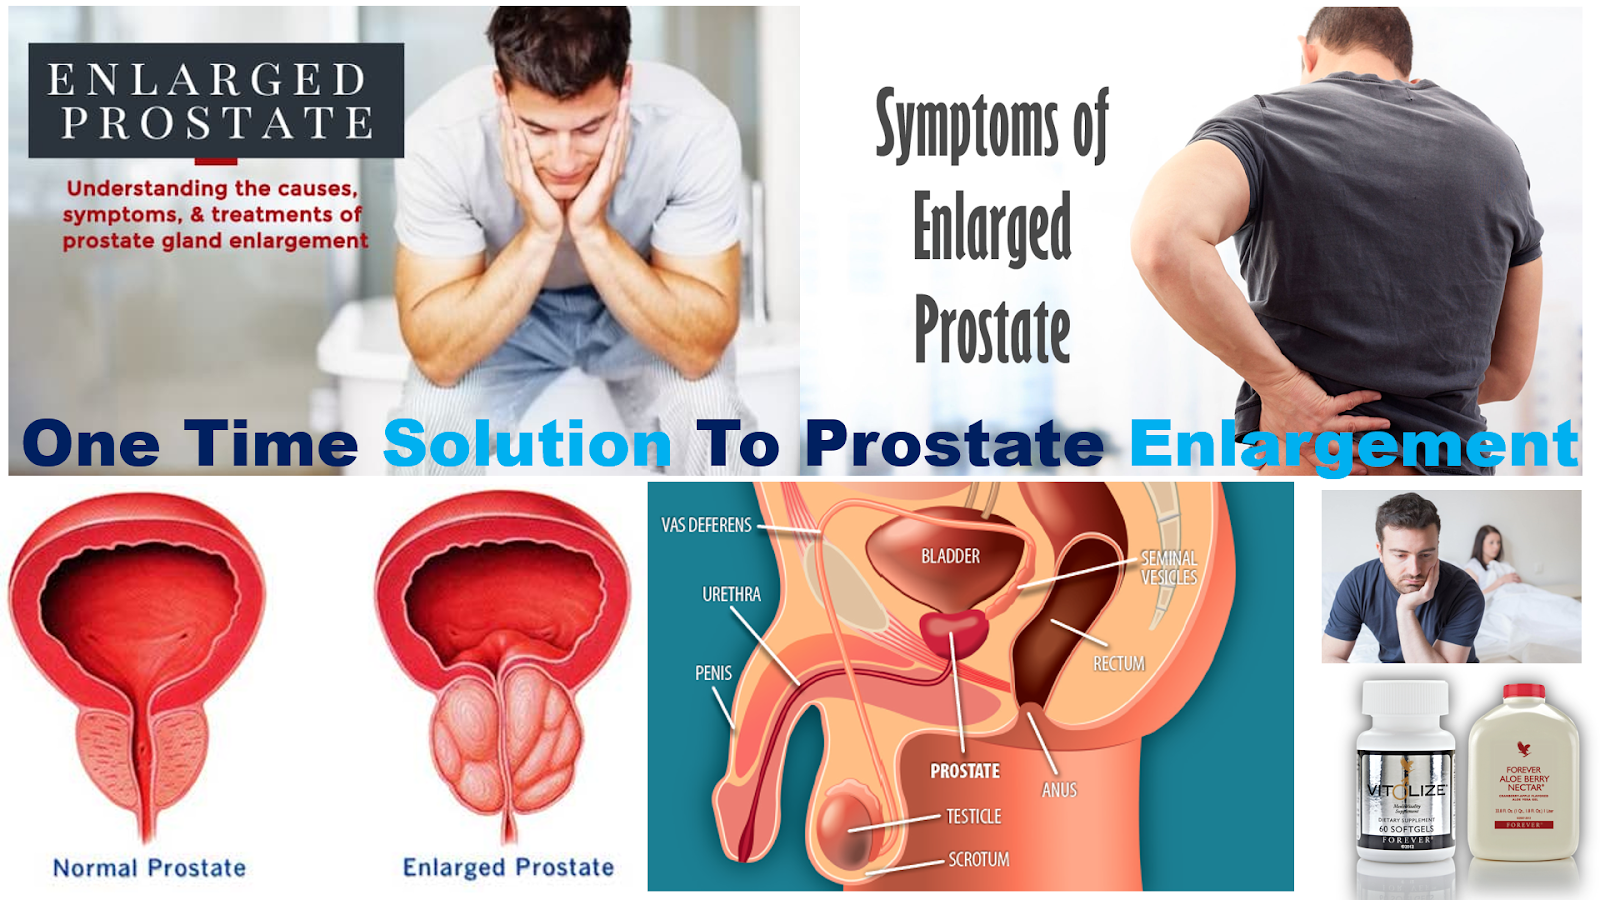 One Time Solution To Prostate Enlargement